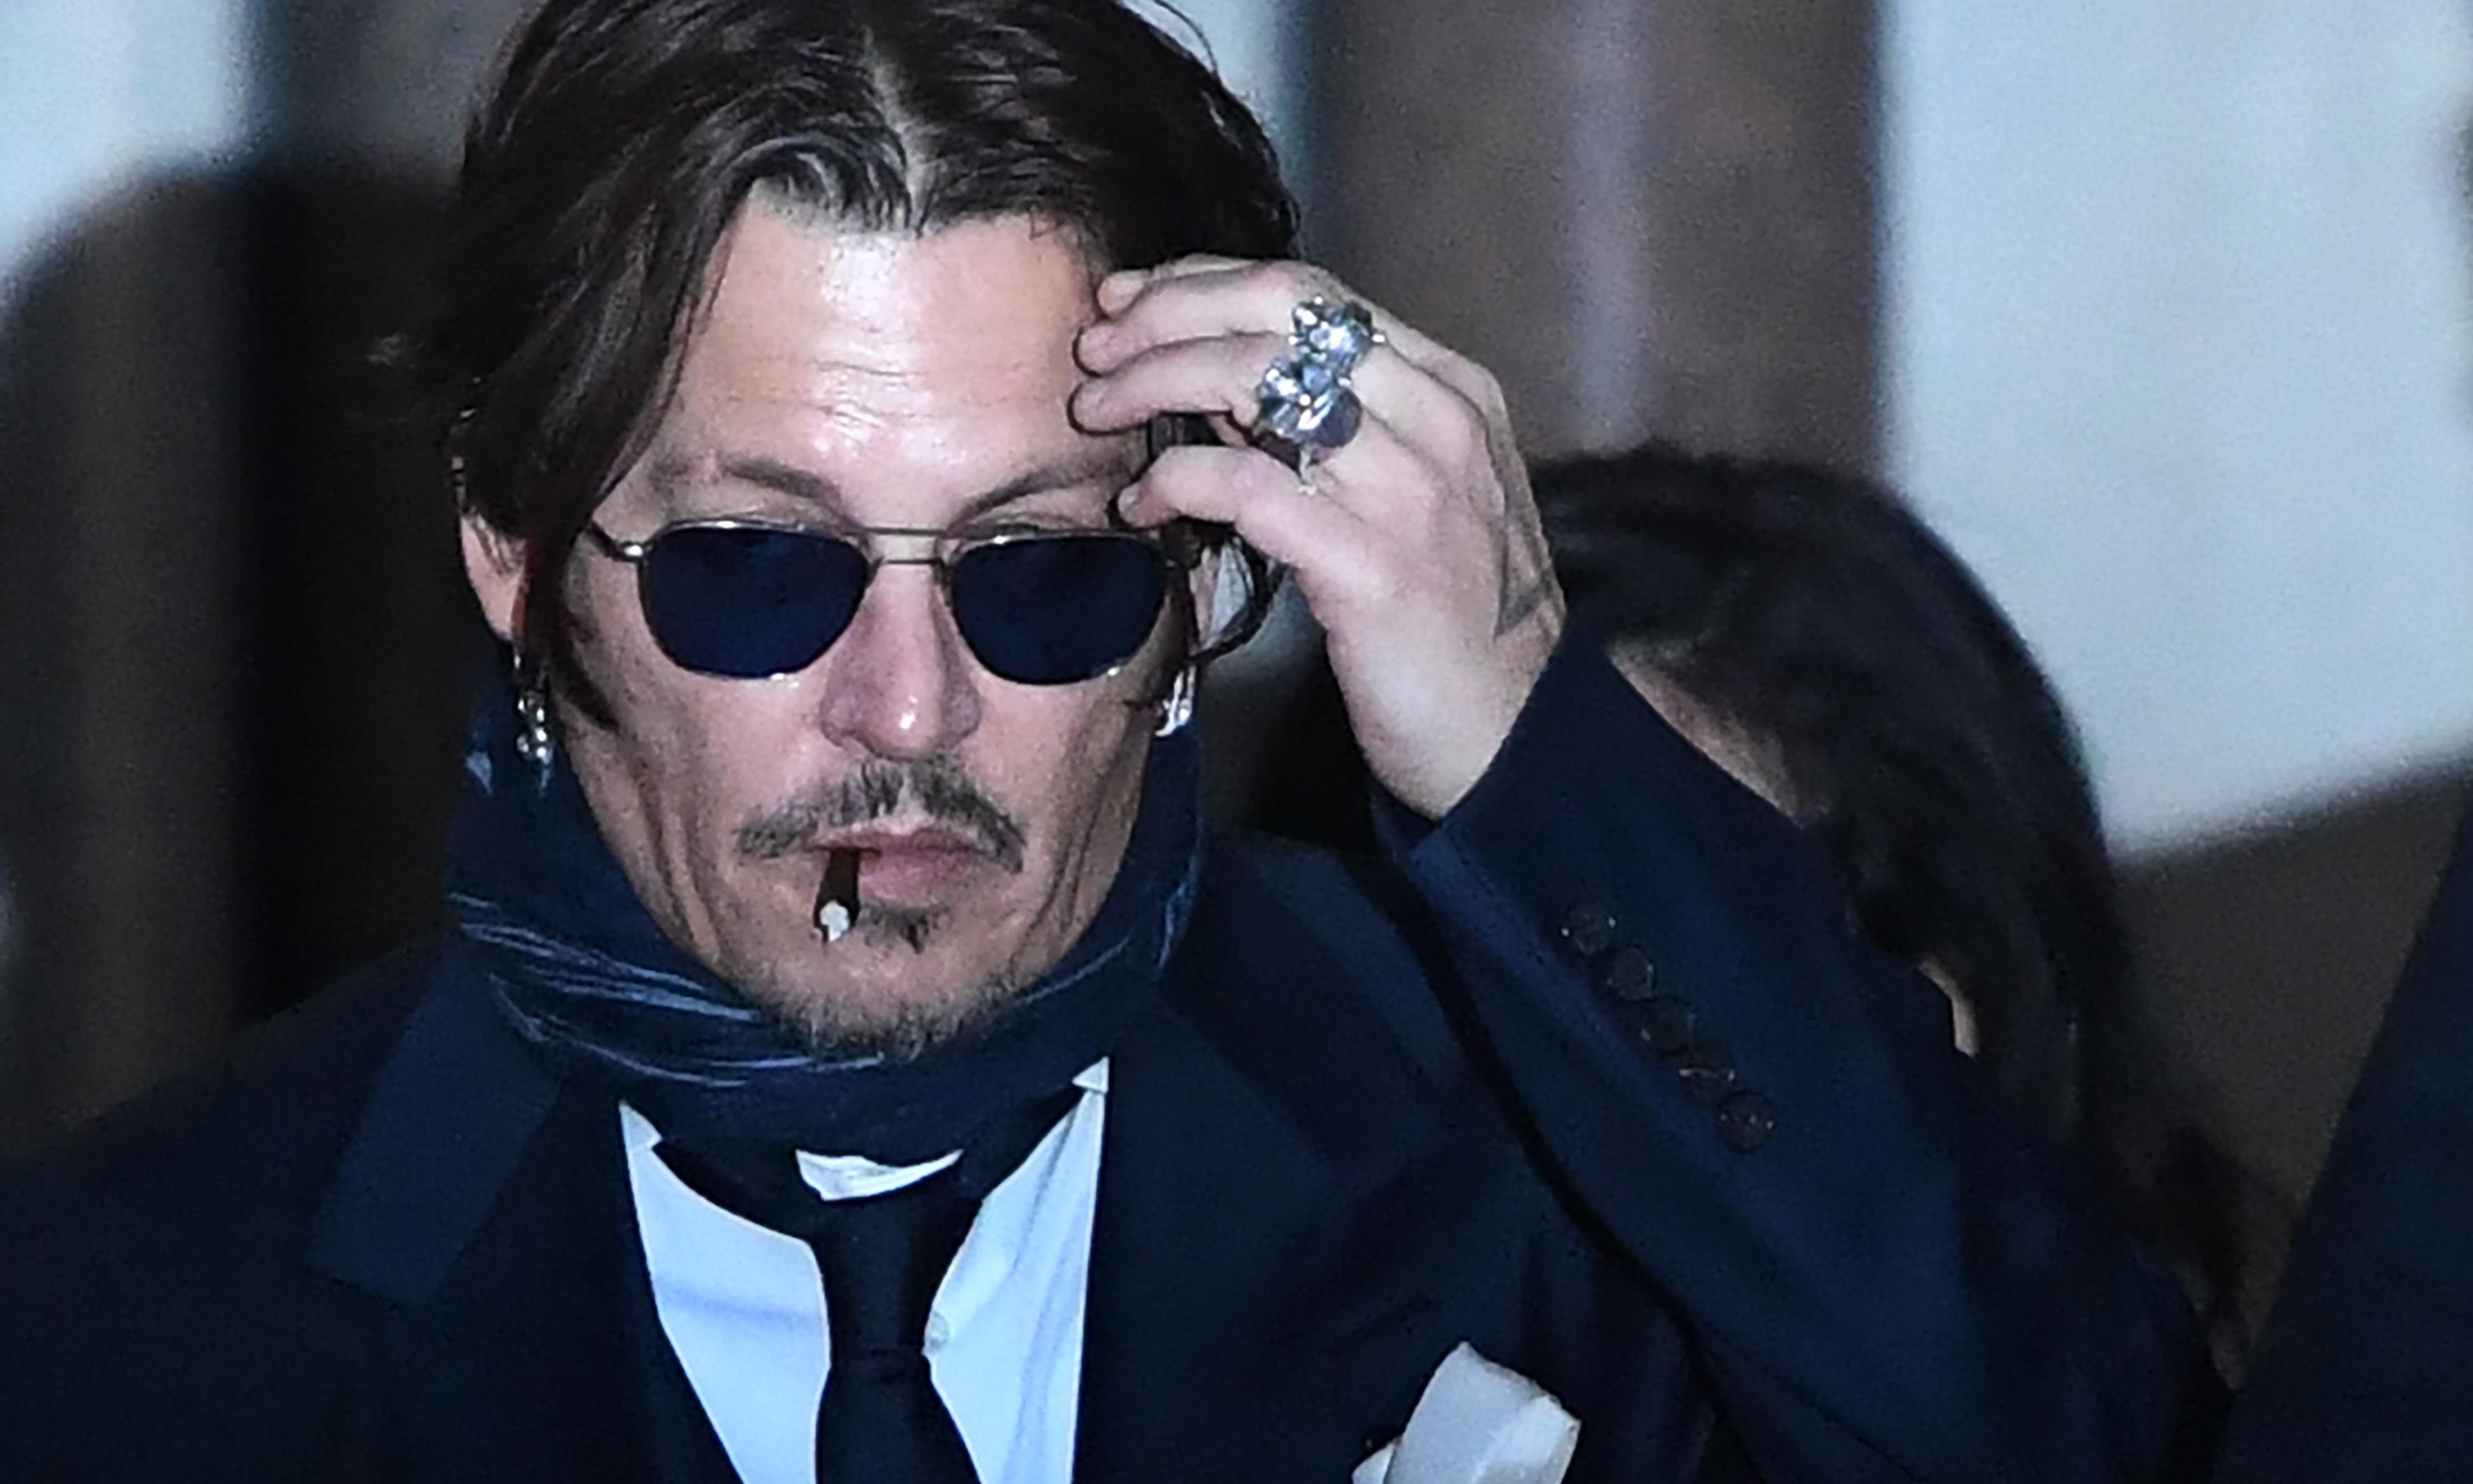 'Let's burn Amber': texts allegedly sent by Johnny Depp about ex read in court